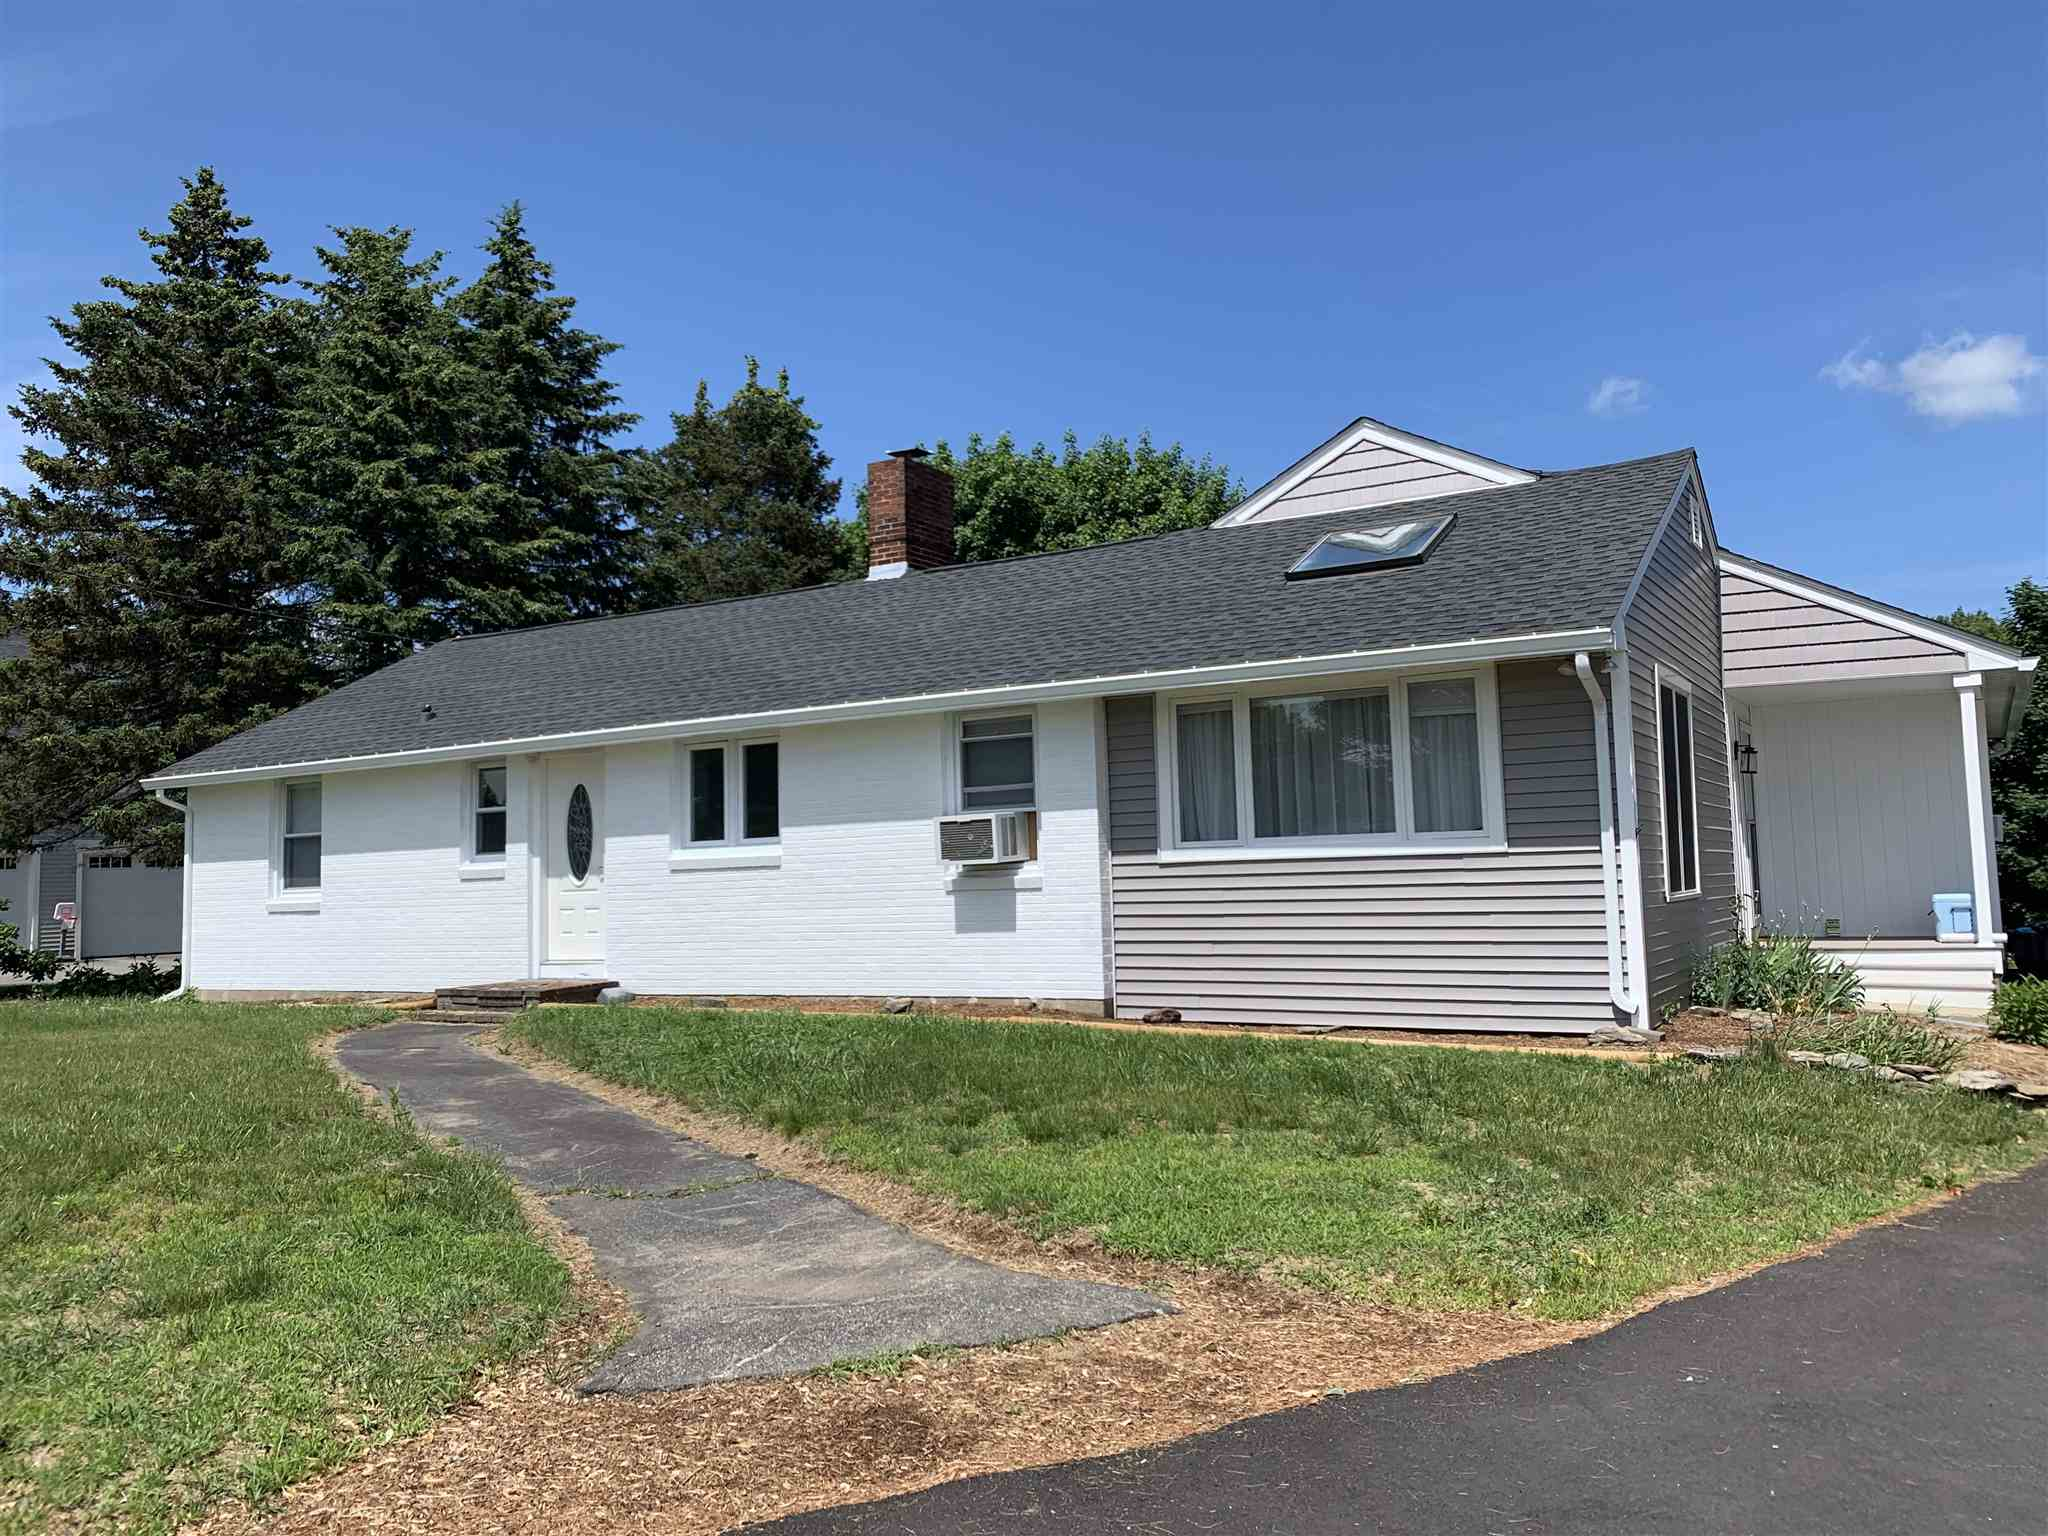 Photo of 157 Bunker Hill Avenue Stratham NH 03885